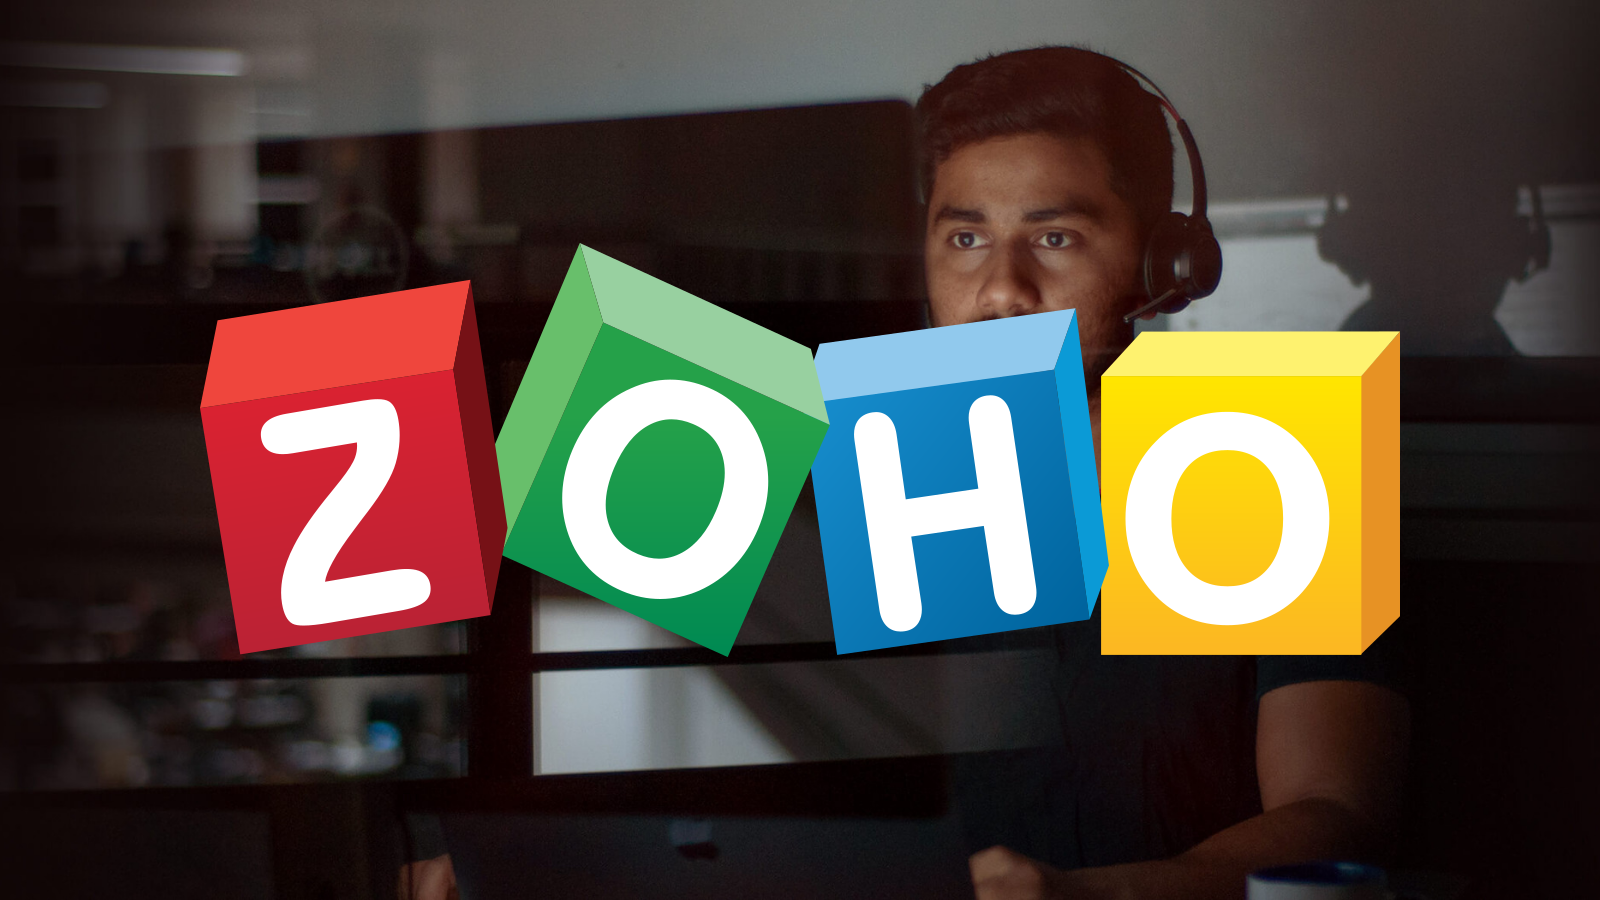 Zoho-office-suite-phishing-malware-affects-over-30-million-users-1